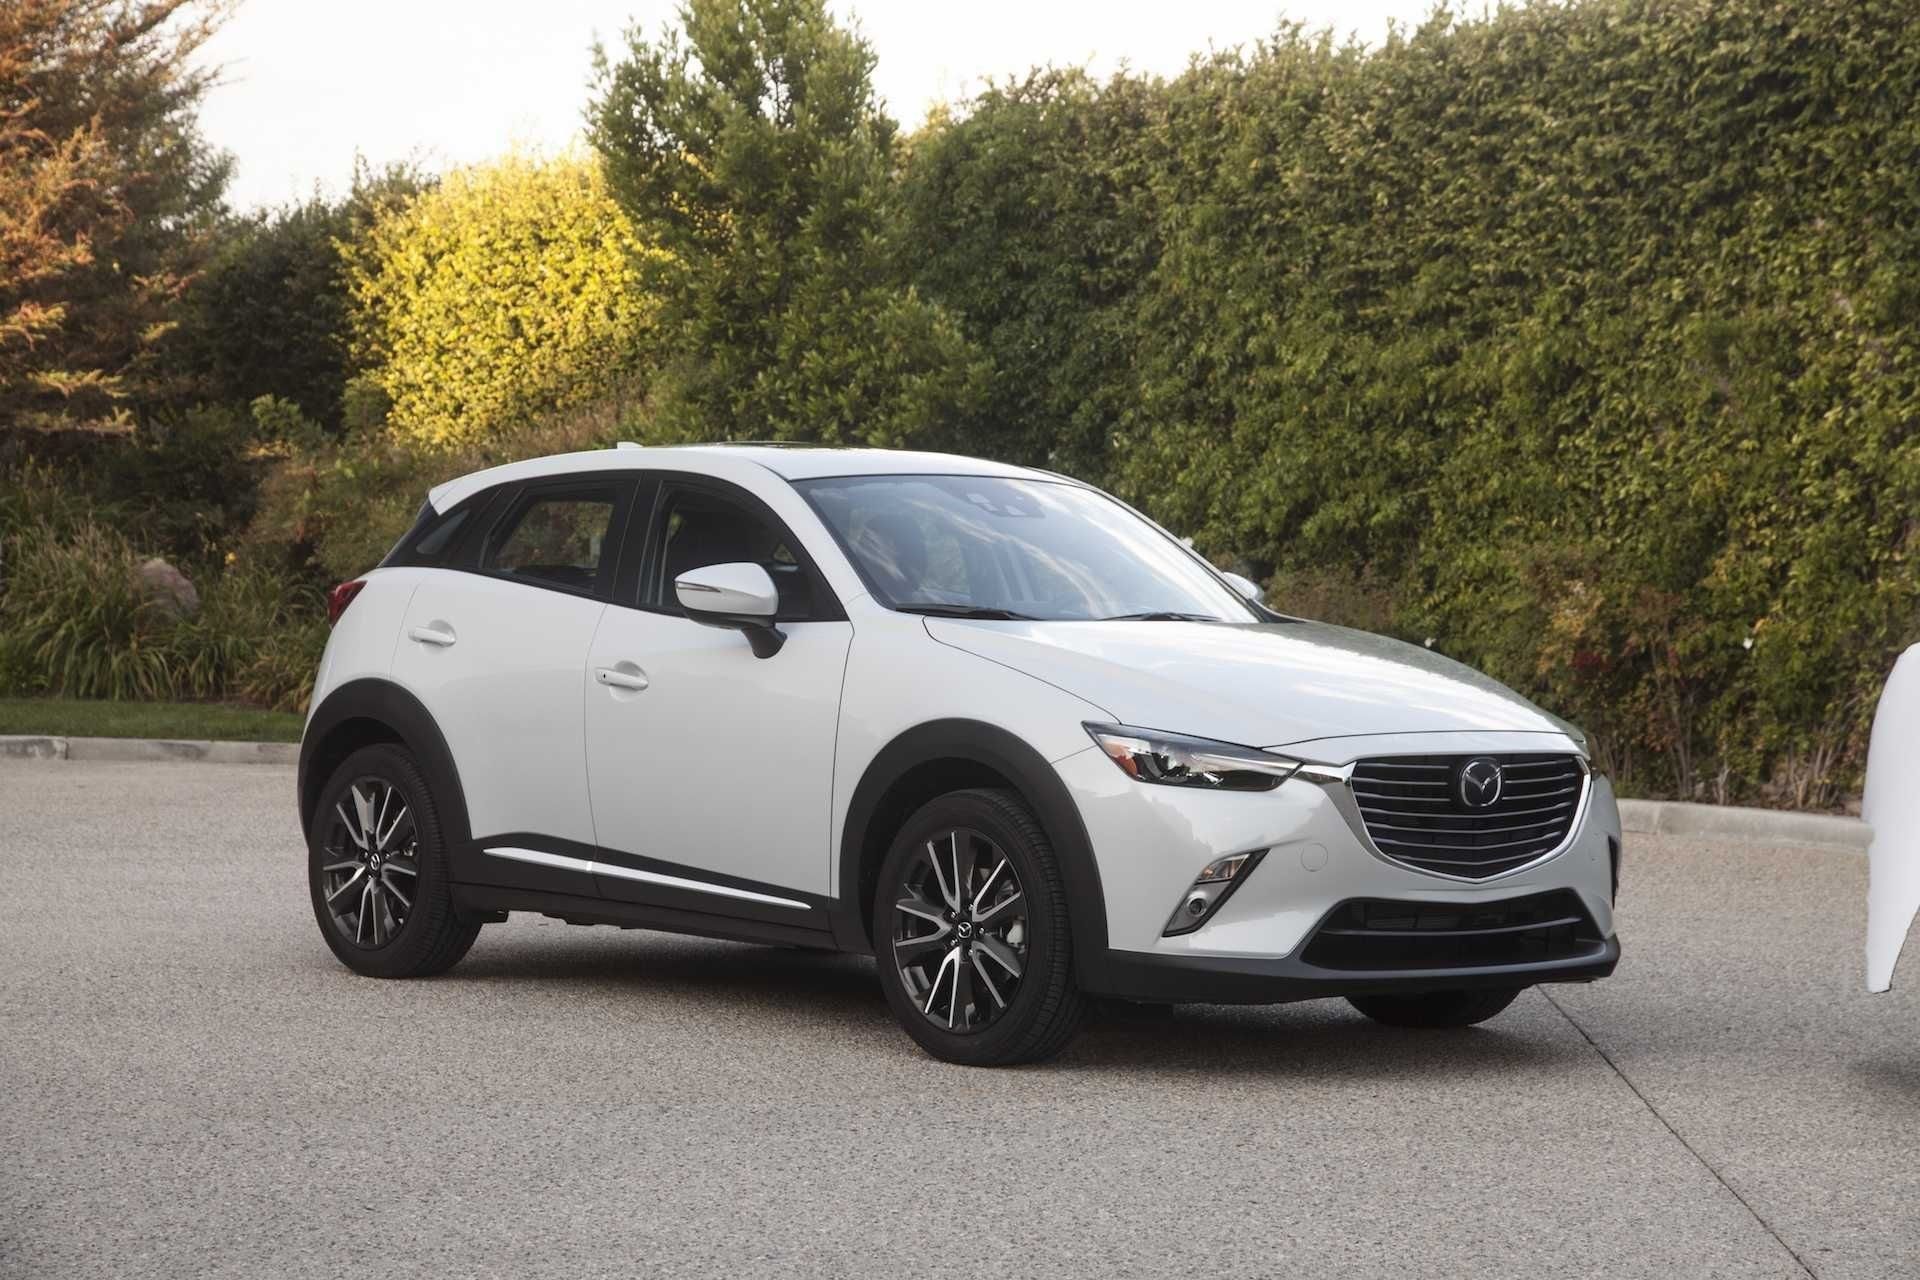 New 2019 Mazda-CX-3 Touring CX-3 Touring for sale $23,875 at M and V Leasing in Brooklyn NY 11223 1